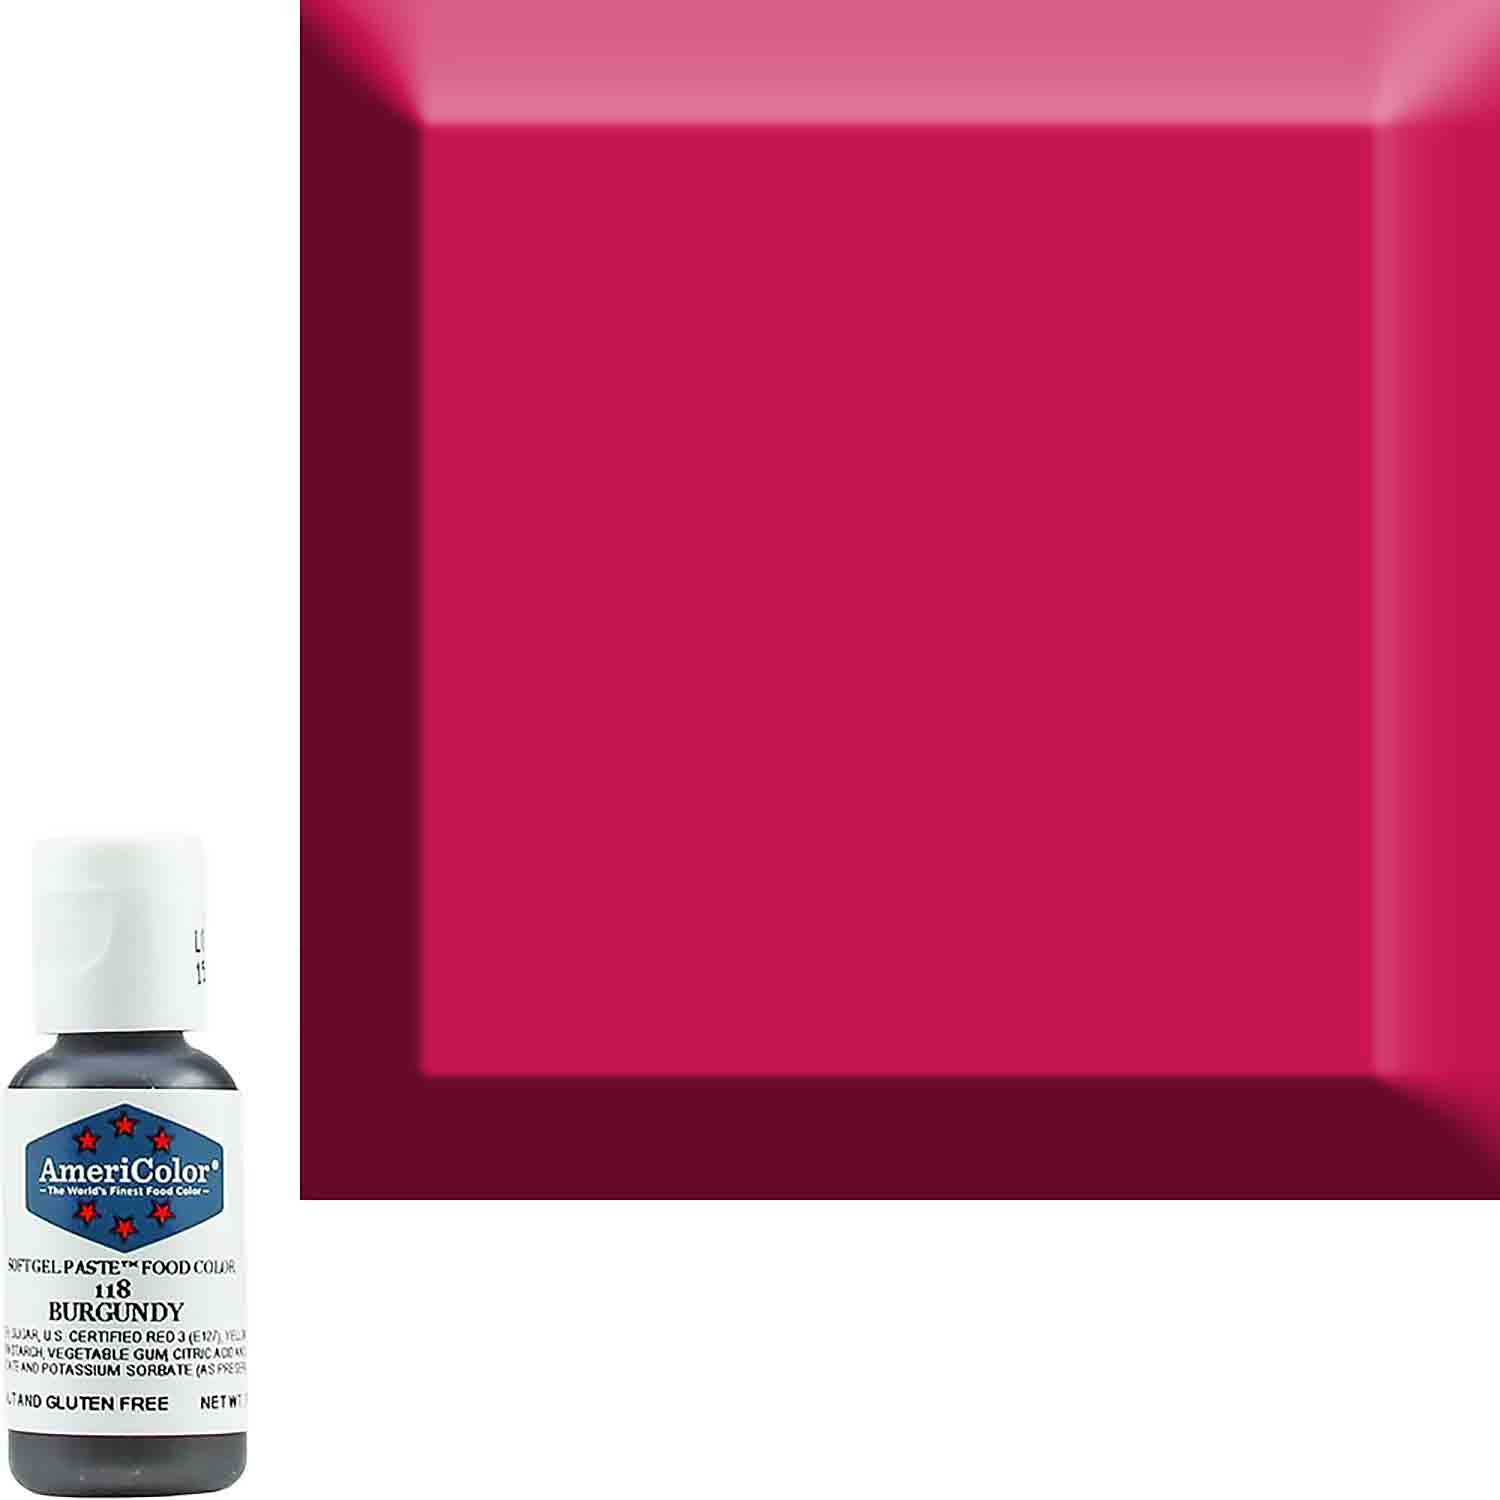 Burgundy AmeriColor® Soft Gel Paste™ Food Color